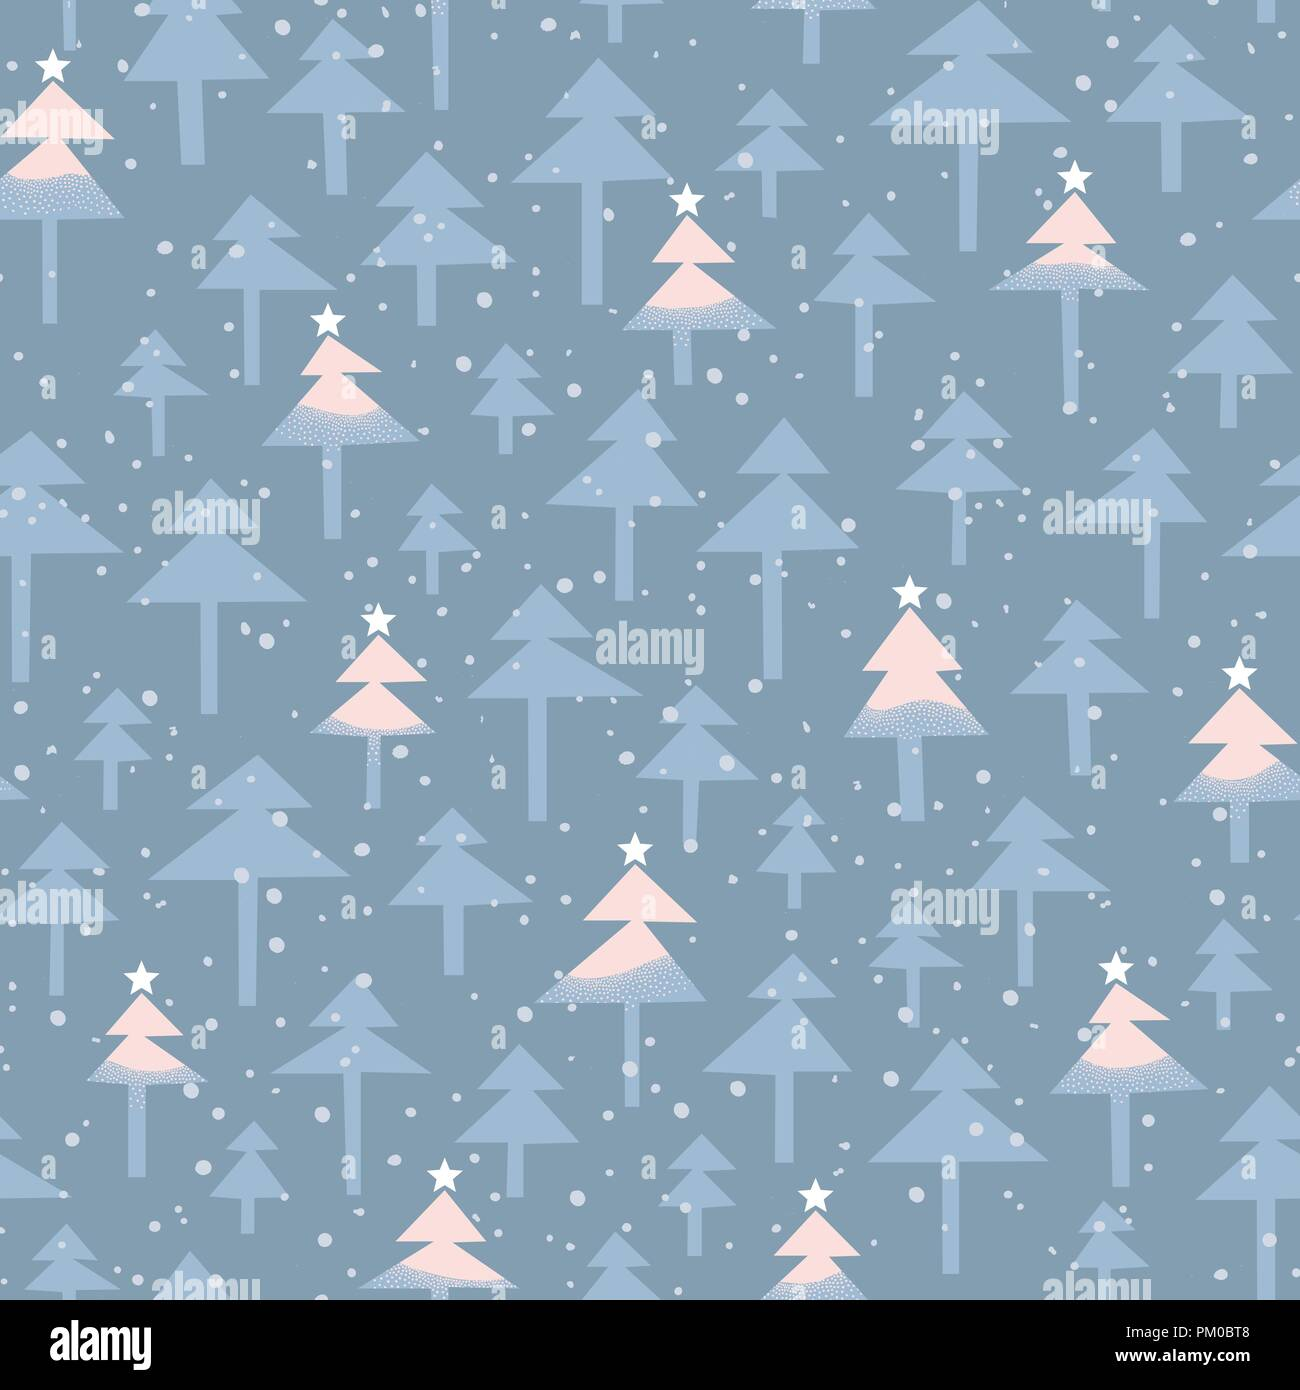 cute trendy abstract christmas pastel pink and blue shaded trees stars snow on woodland background vector seamless pattern winter wonderland holida PM0BT8